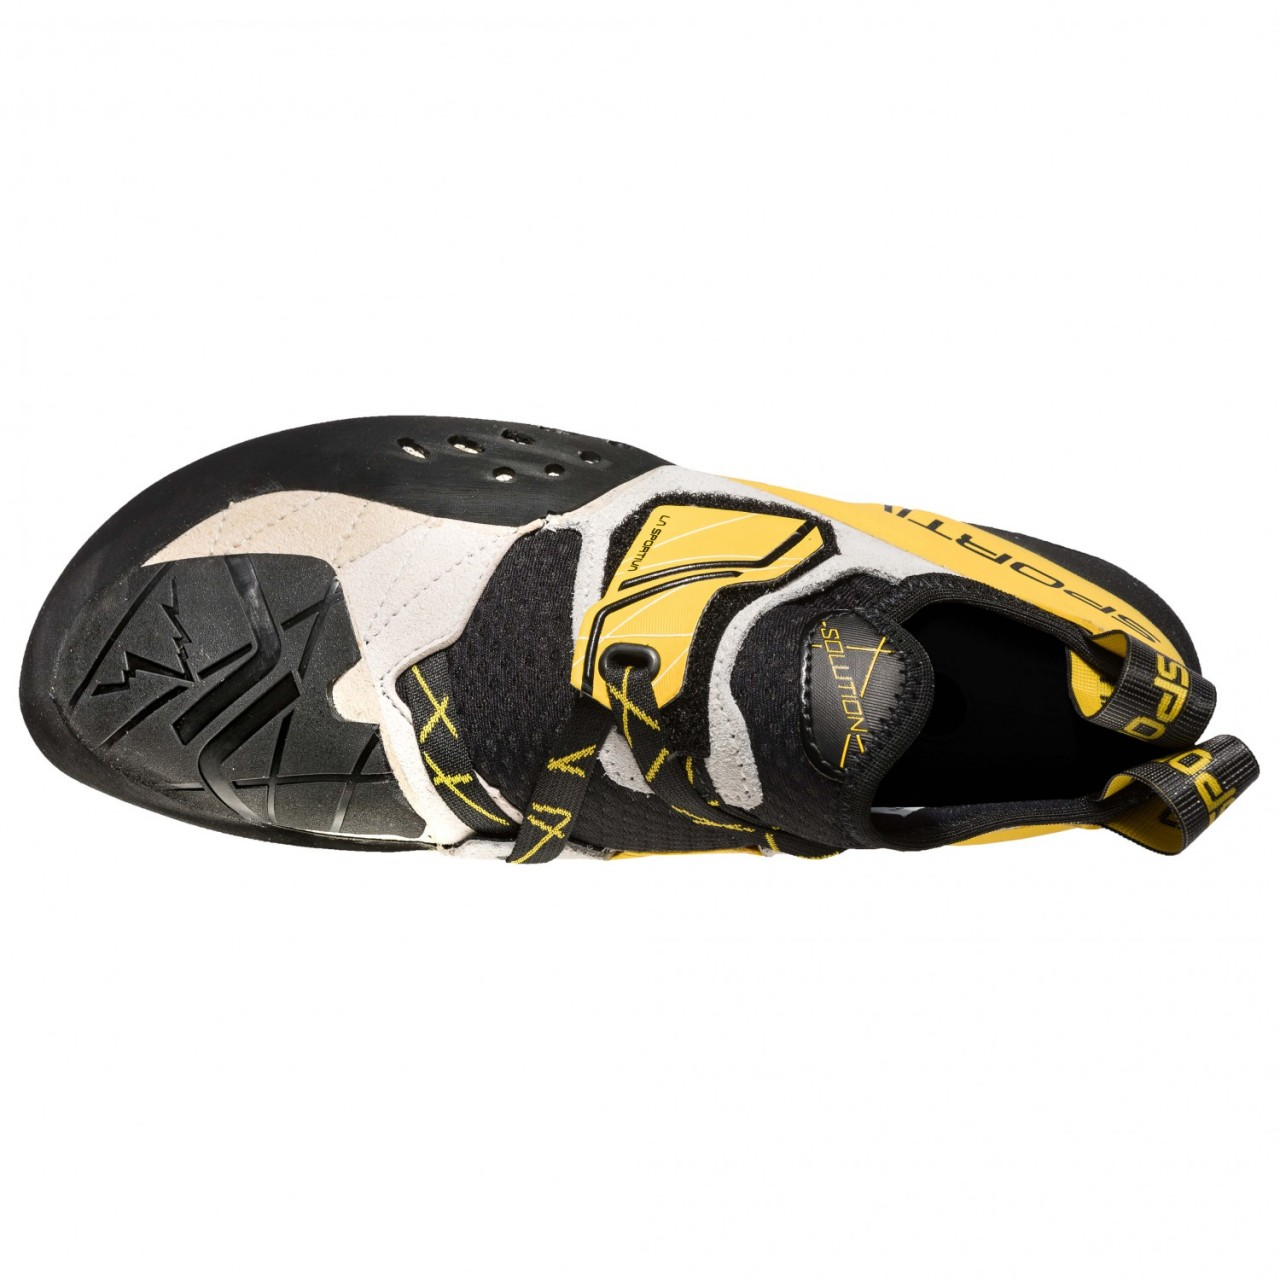 1a03653b98 The La Sportiva Solution is a revolutionary rock shoe developed  specifically for bouldering. Whatever technical problem the rock presents